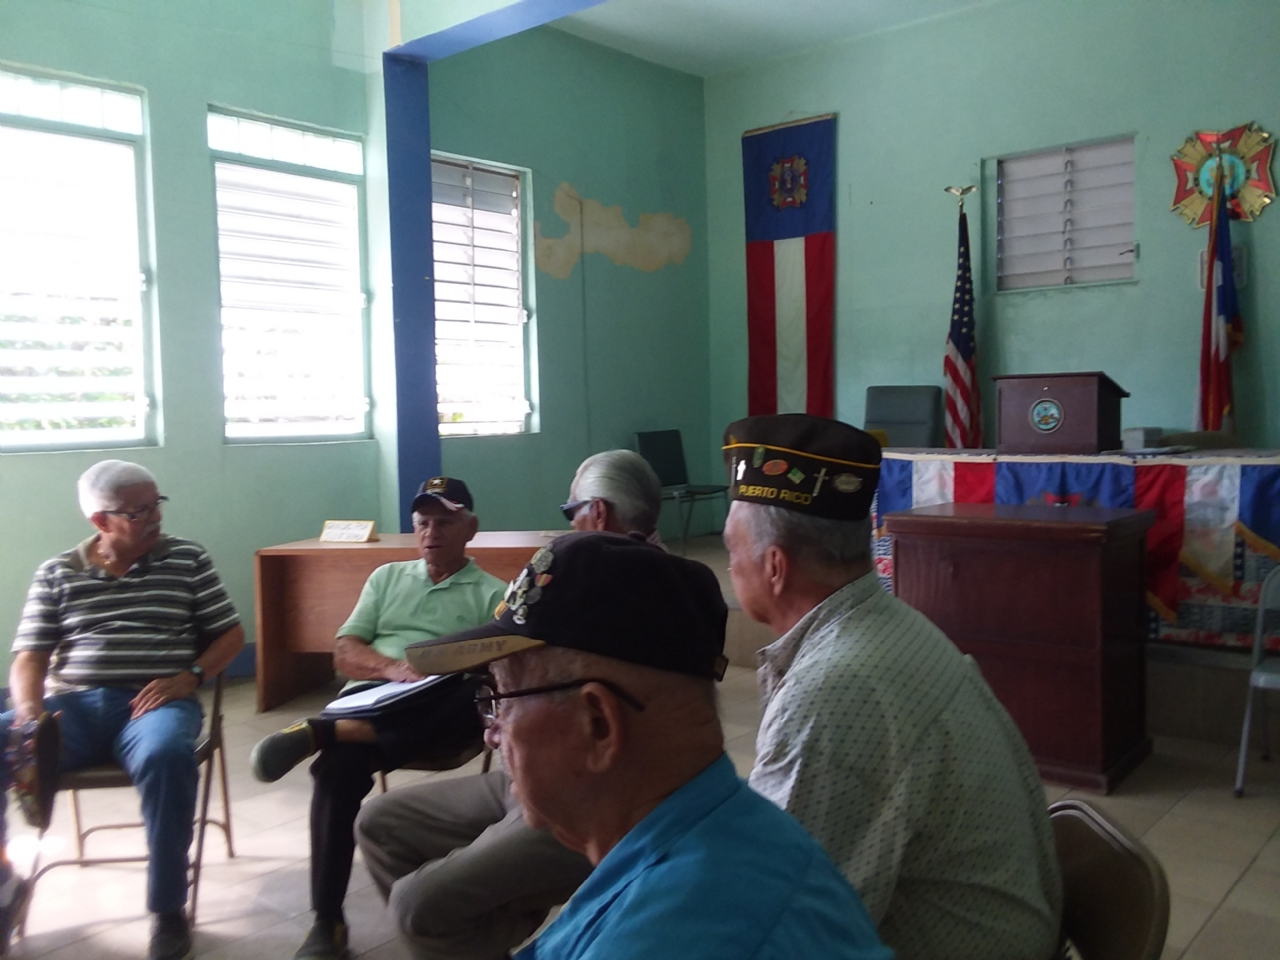 VFW Post 11103 Monthly meeting on Sunday, December 10th 2017.